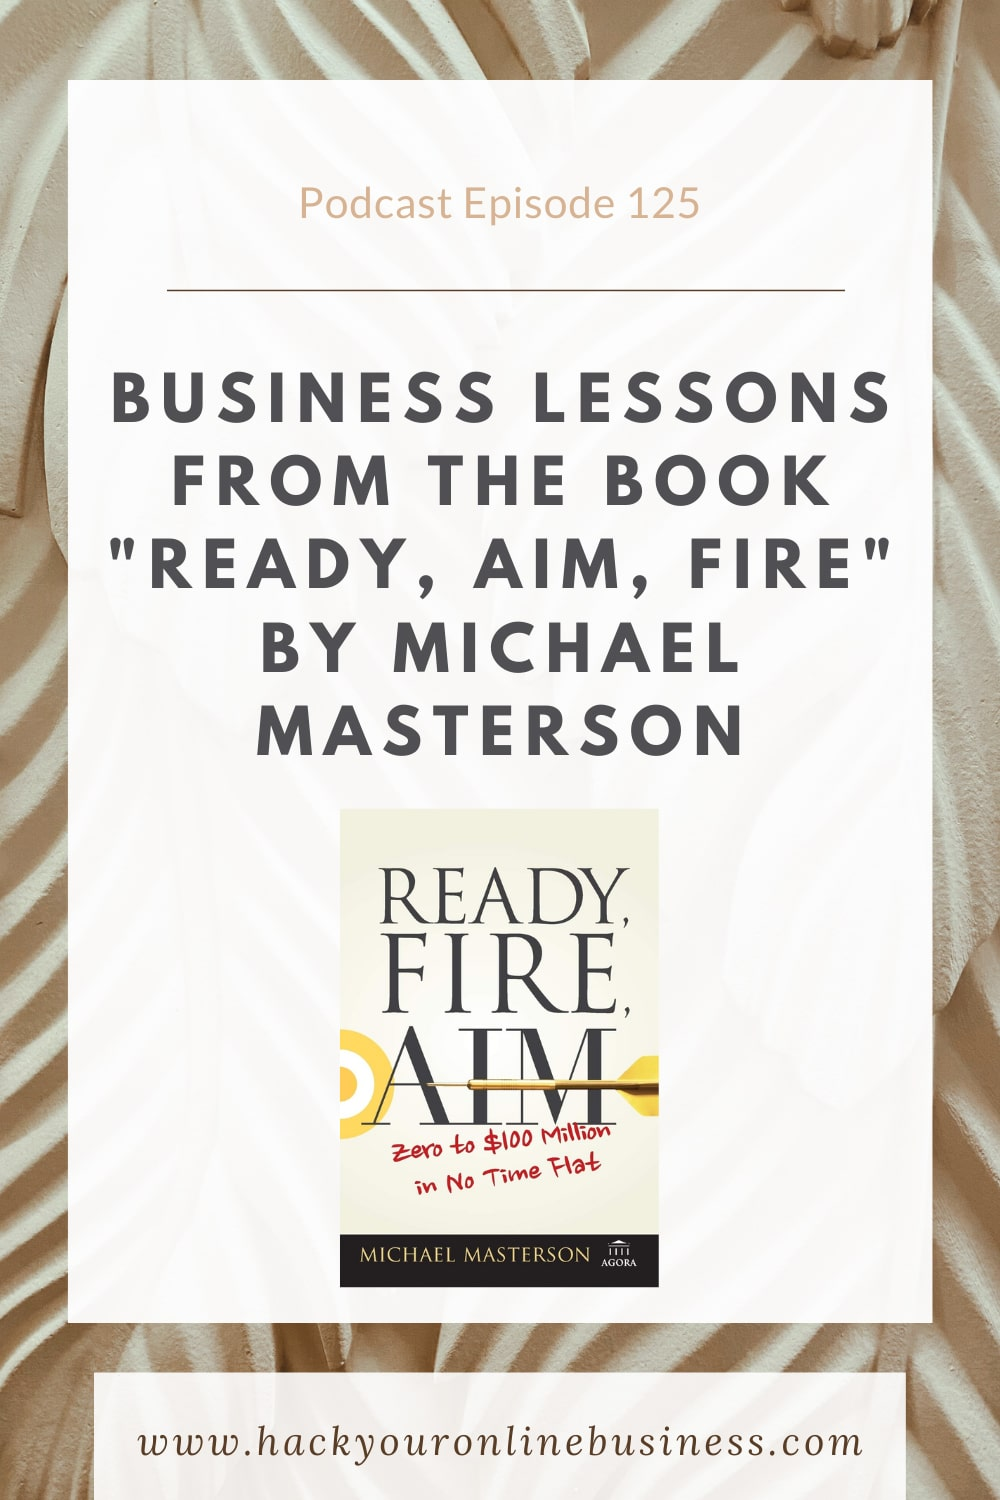 Business lessons from ready aim fire by michael masterson